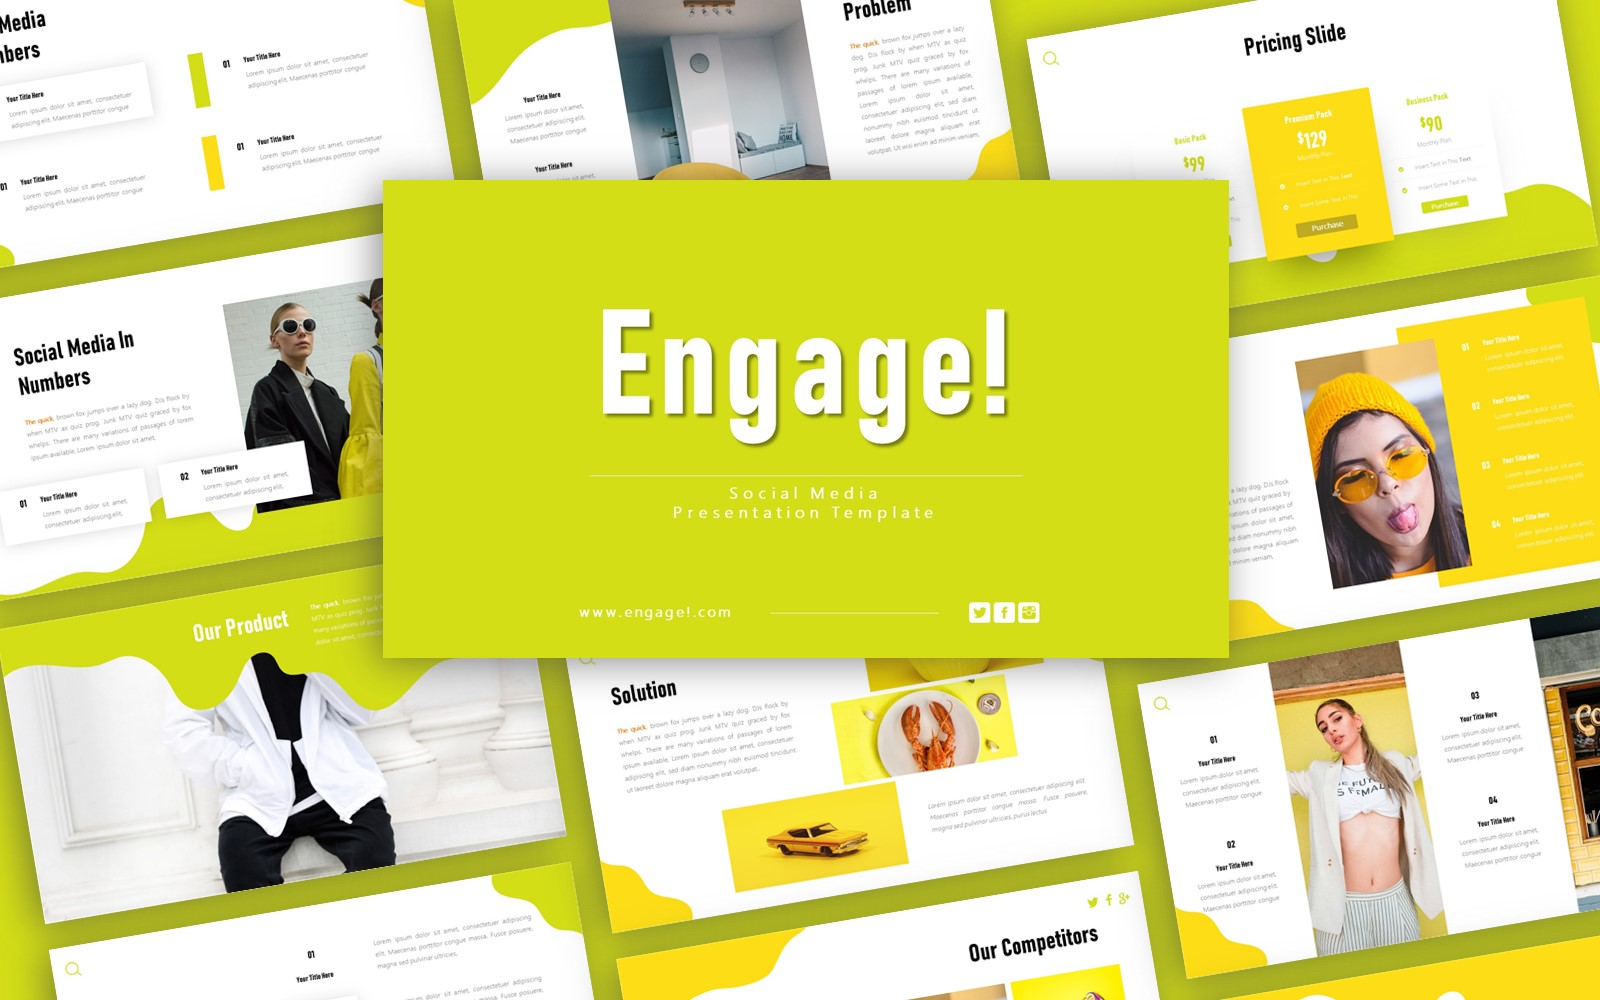 Engage Social Media Presentation PowerPoint Template